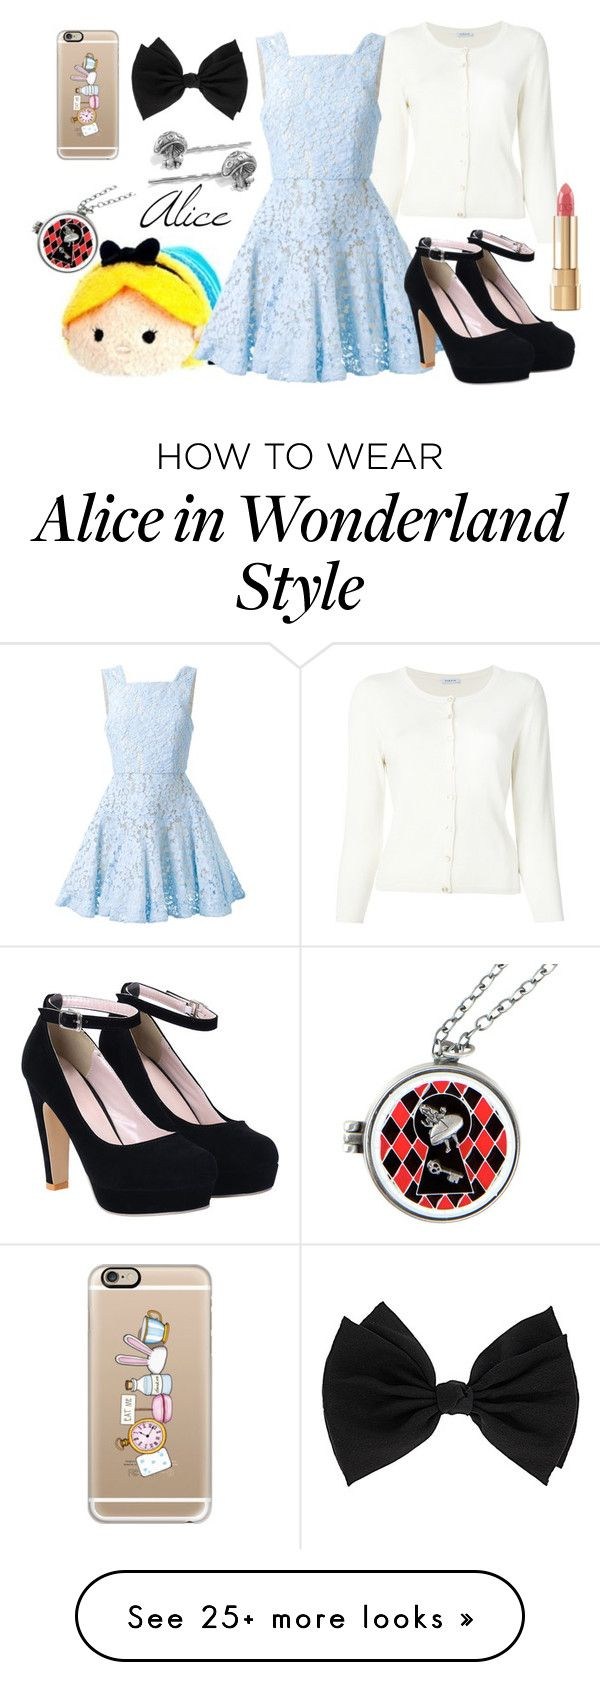 """Tsum tsum"" by clever1 on Polyvore featuring Disney, P.A.R.O.S.H., Alex Perry, Dorothy Perkins, Casetify and Dolce&Gabbana"